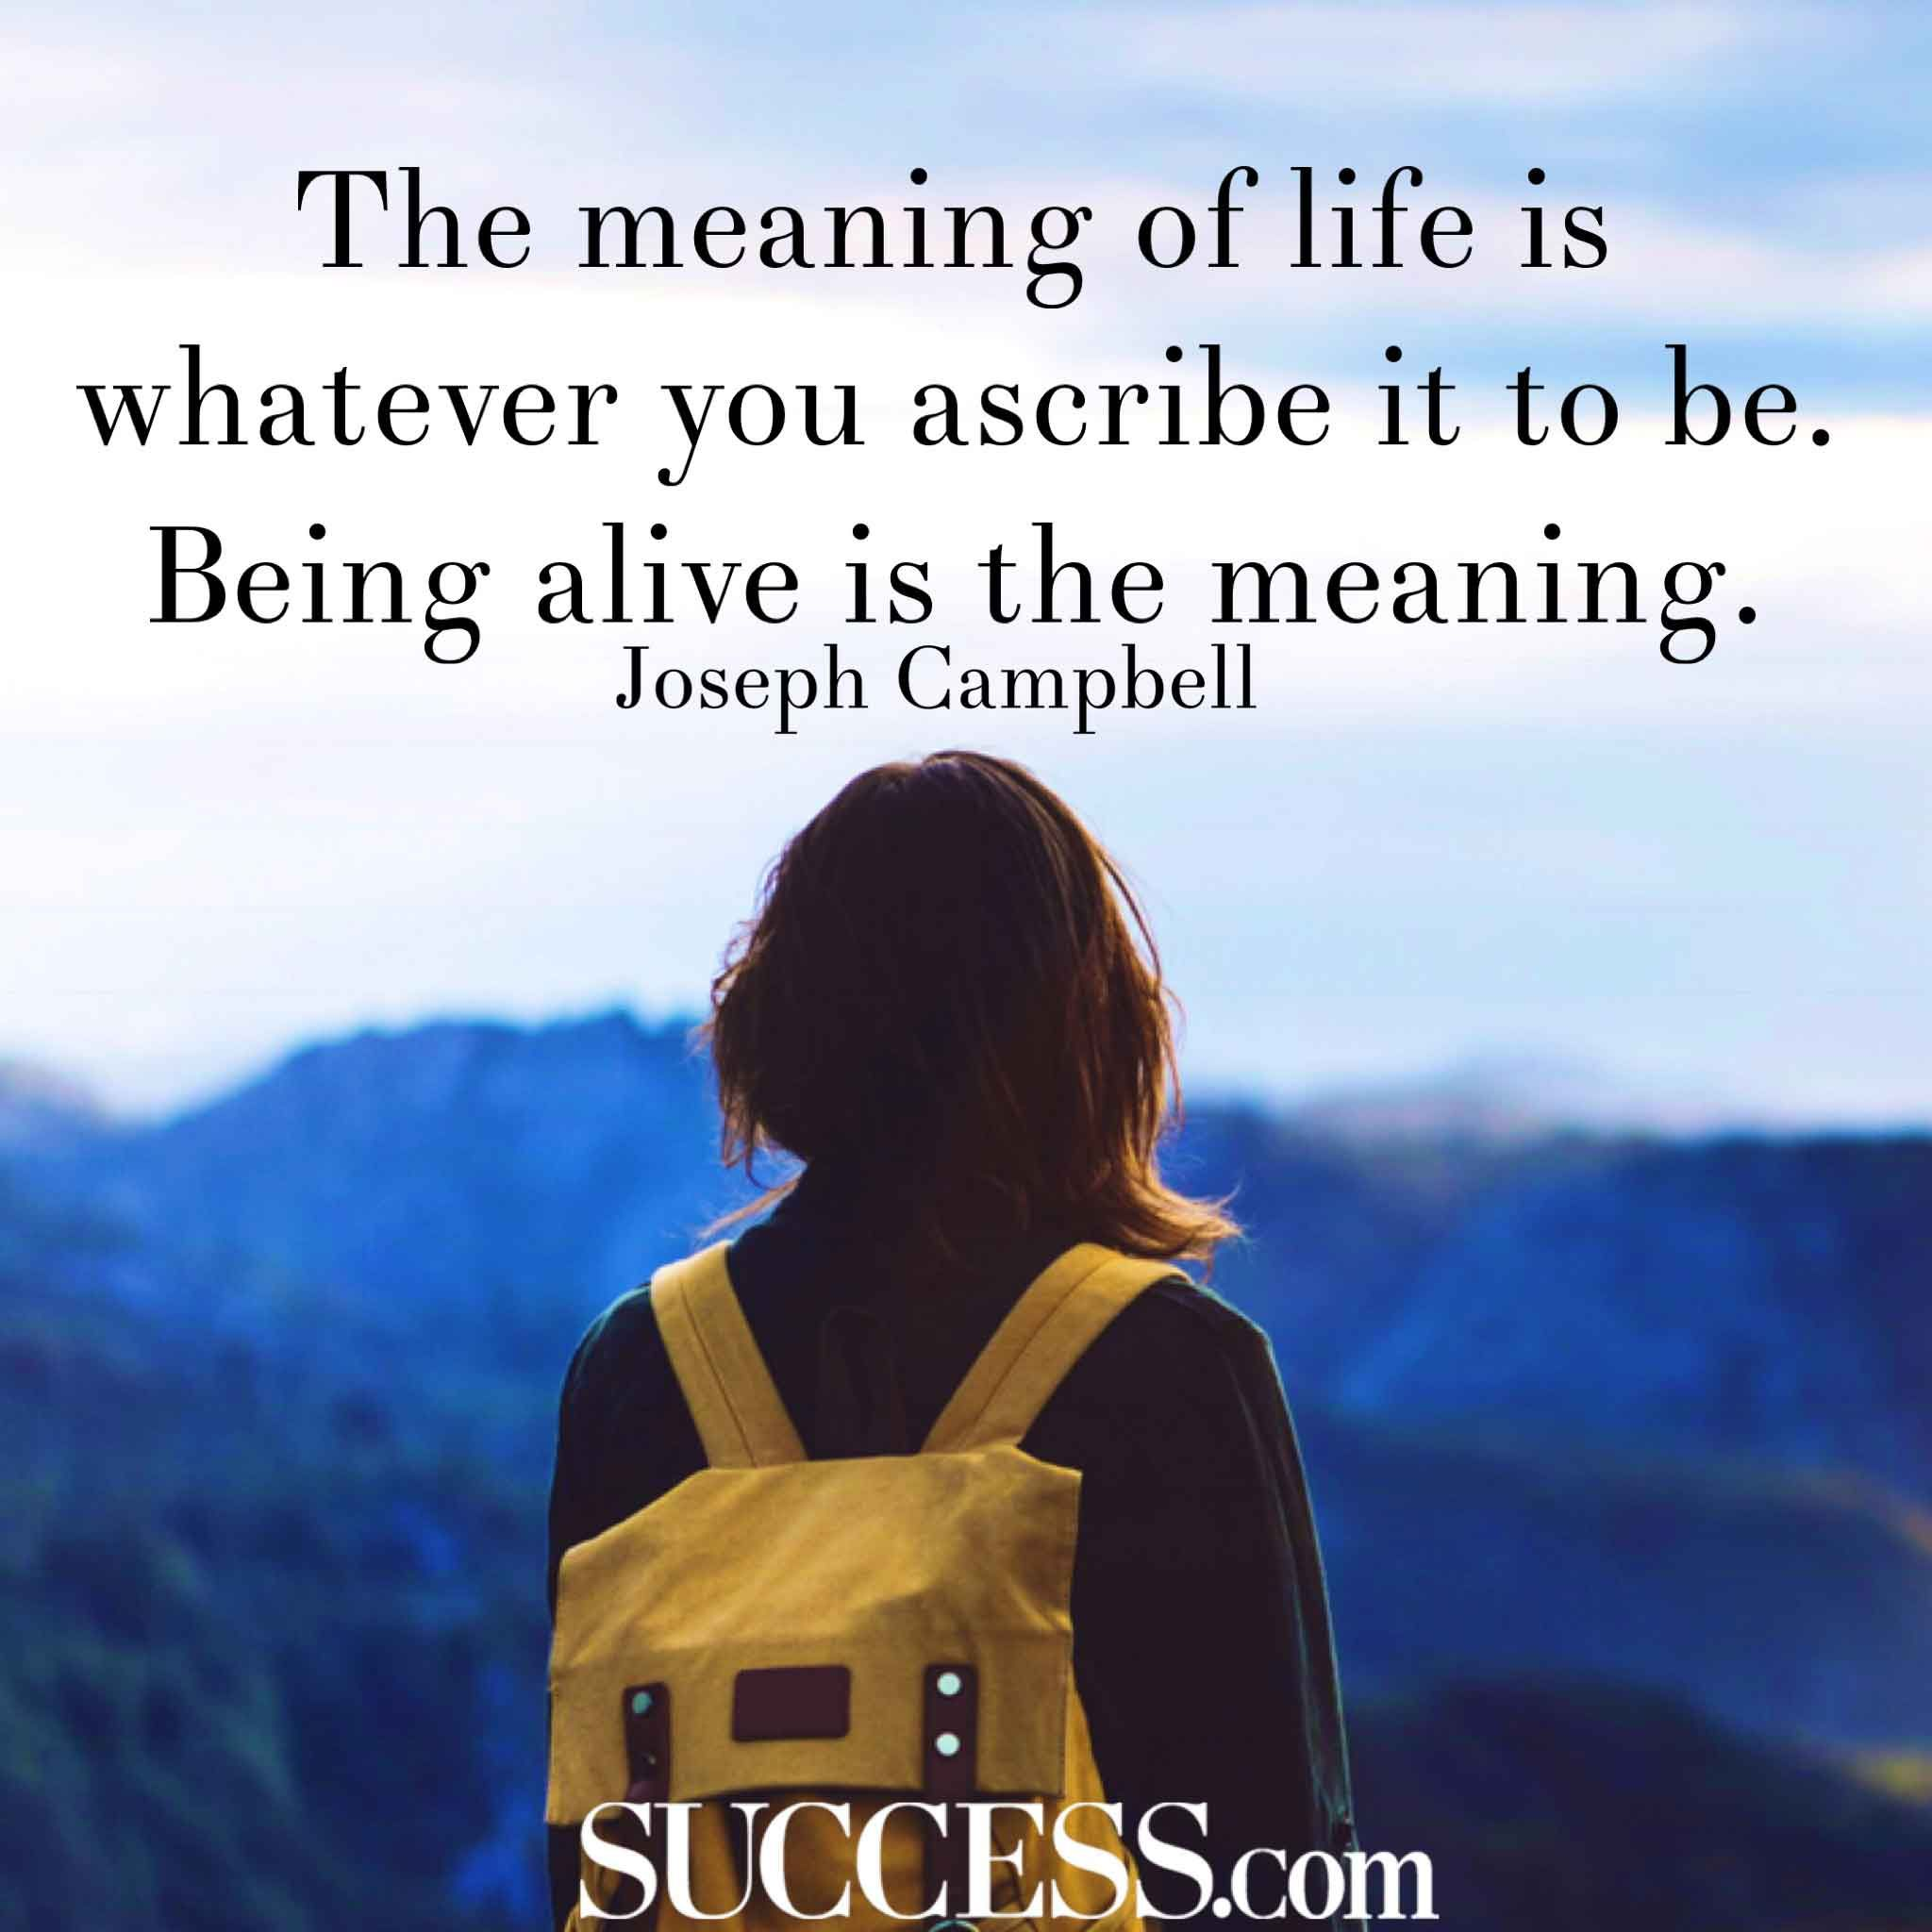 Meaning Of Life Quotes Magnificent The Meaning Of Life In 15 Wise Quotes  Success  Self Help